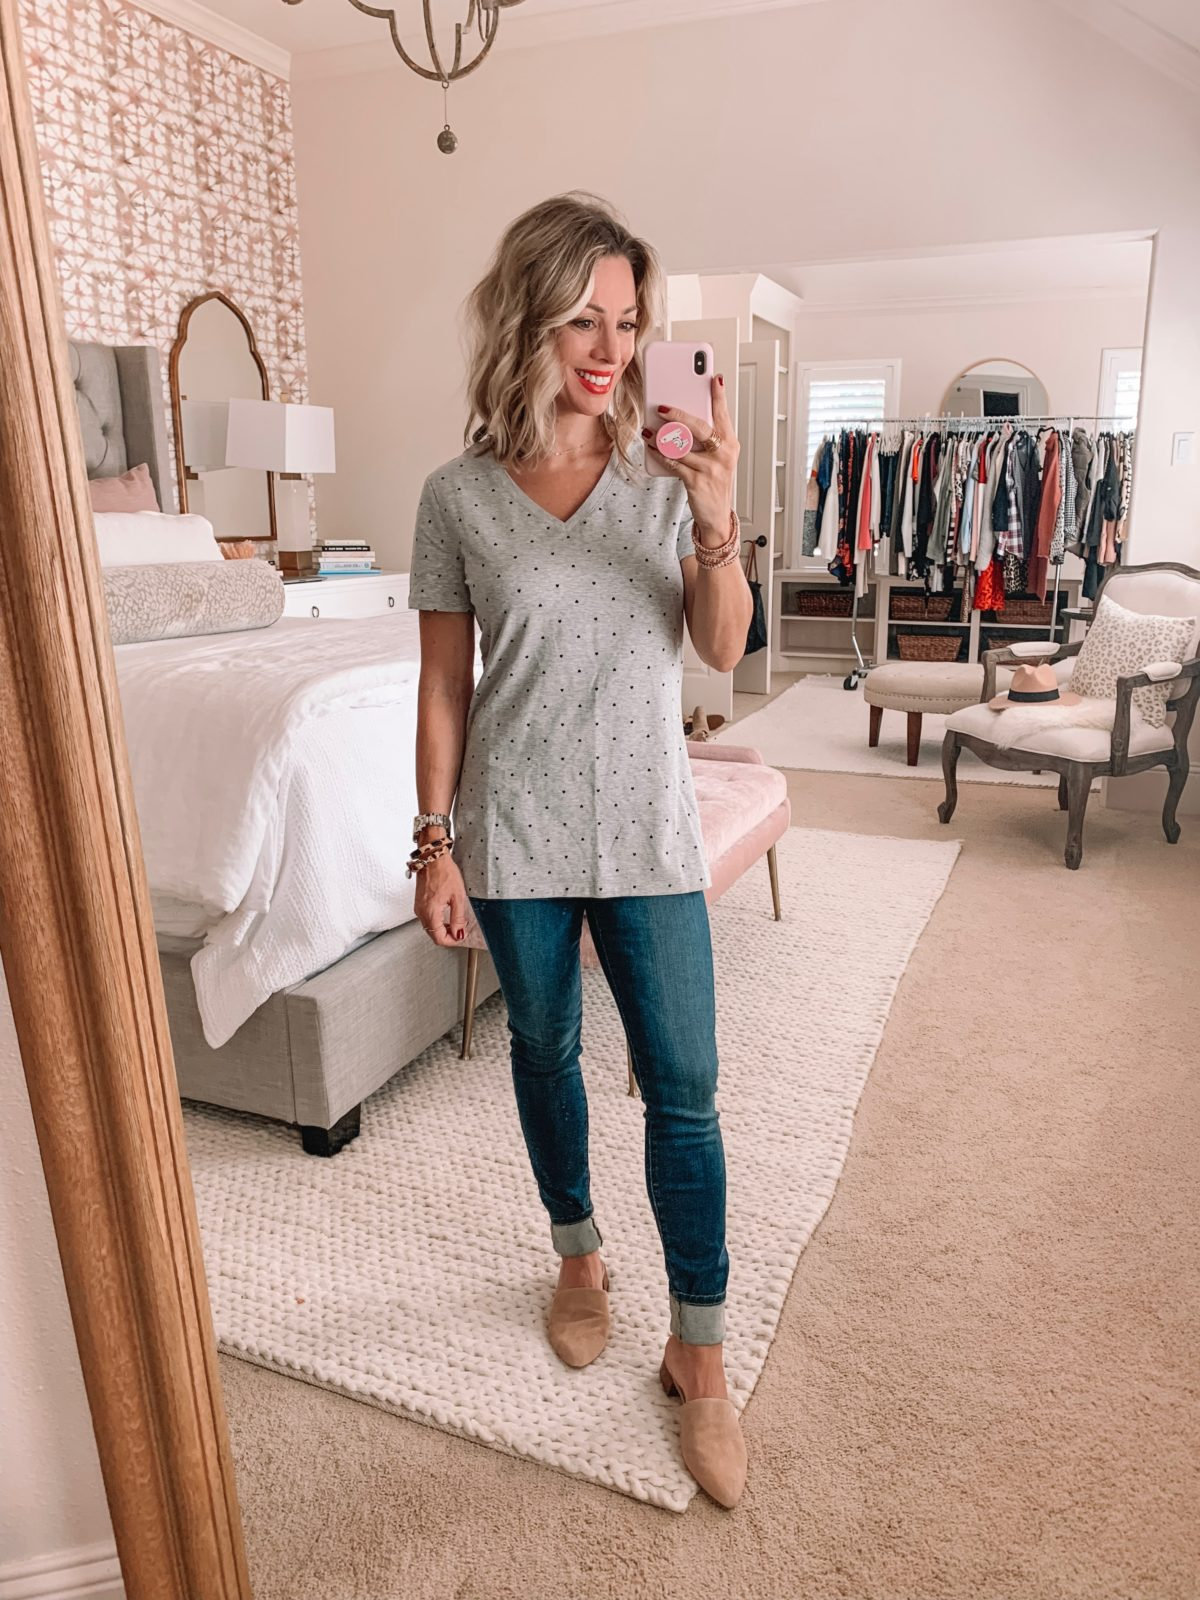 Amazon Prime Fashion- Heart Top and Jeans